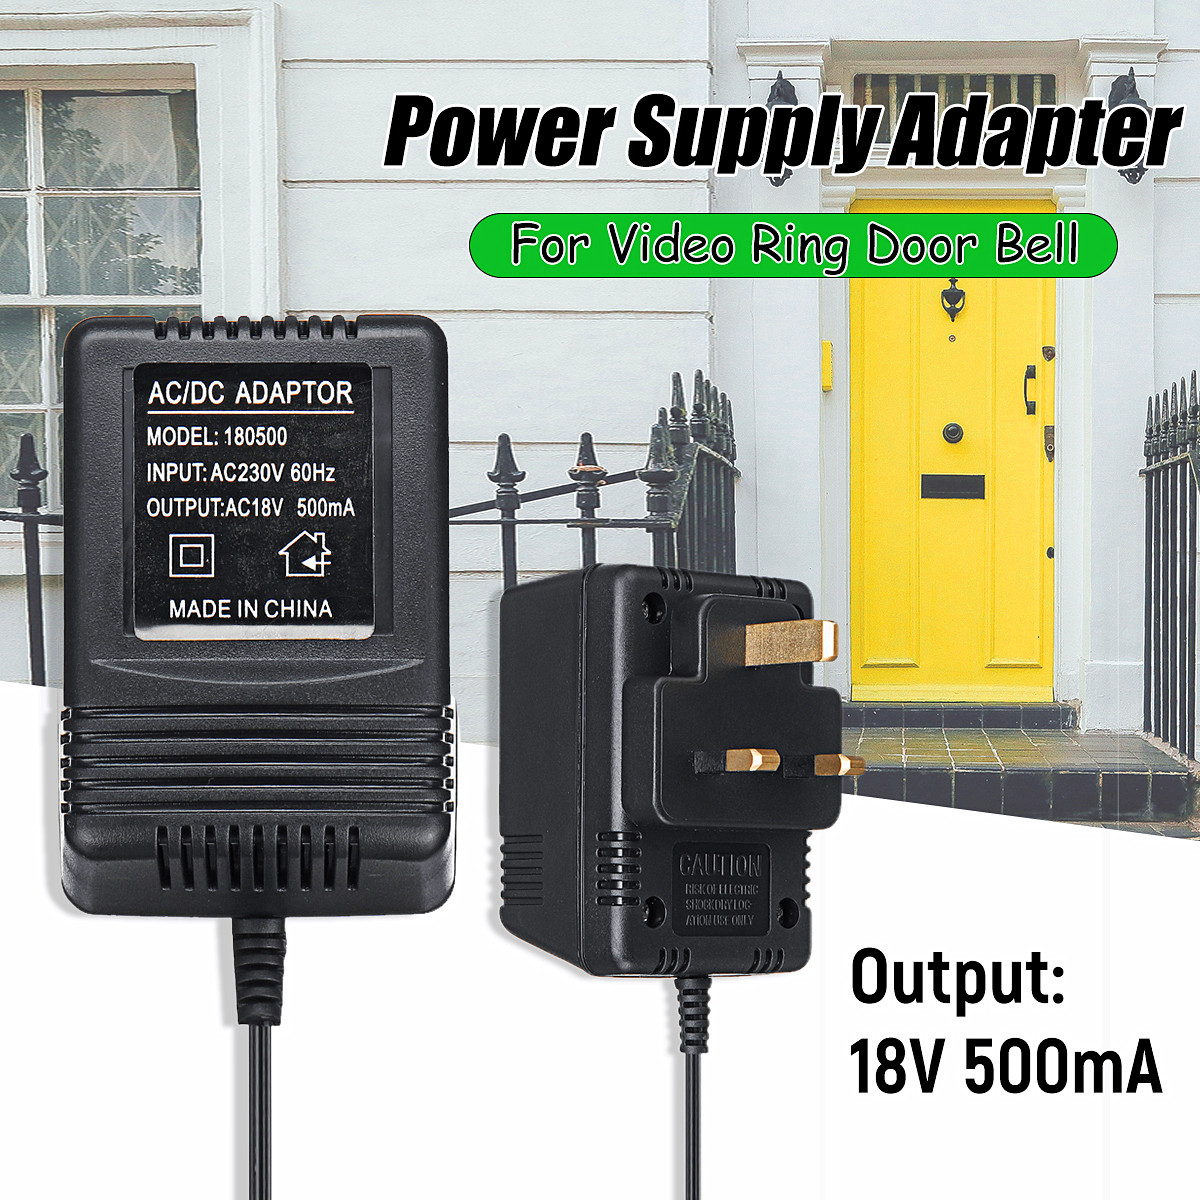 AC 18V 500mA 9W Output UK Power Supply Adapter Transformer Easy Installation for Video Ring Doorbell n galwey w introduction to mixed modelling beyond regression and analysis of variance